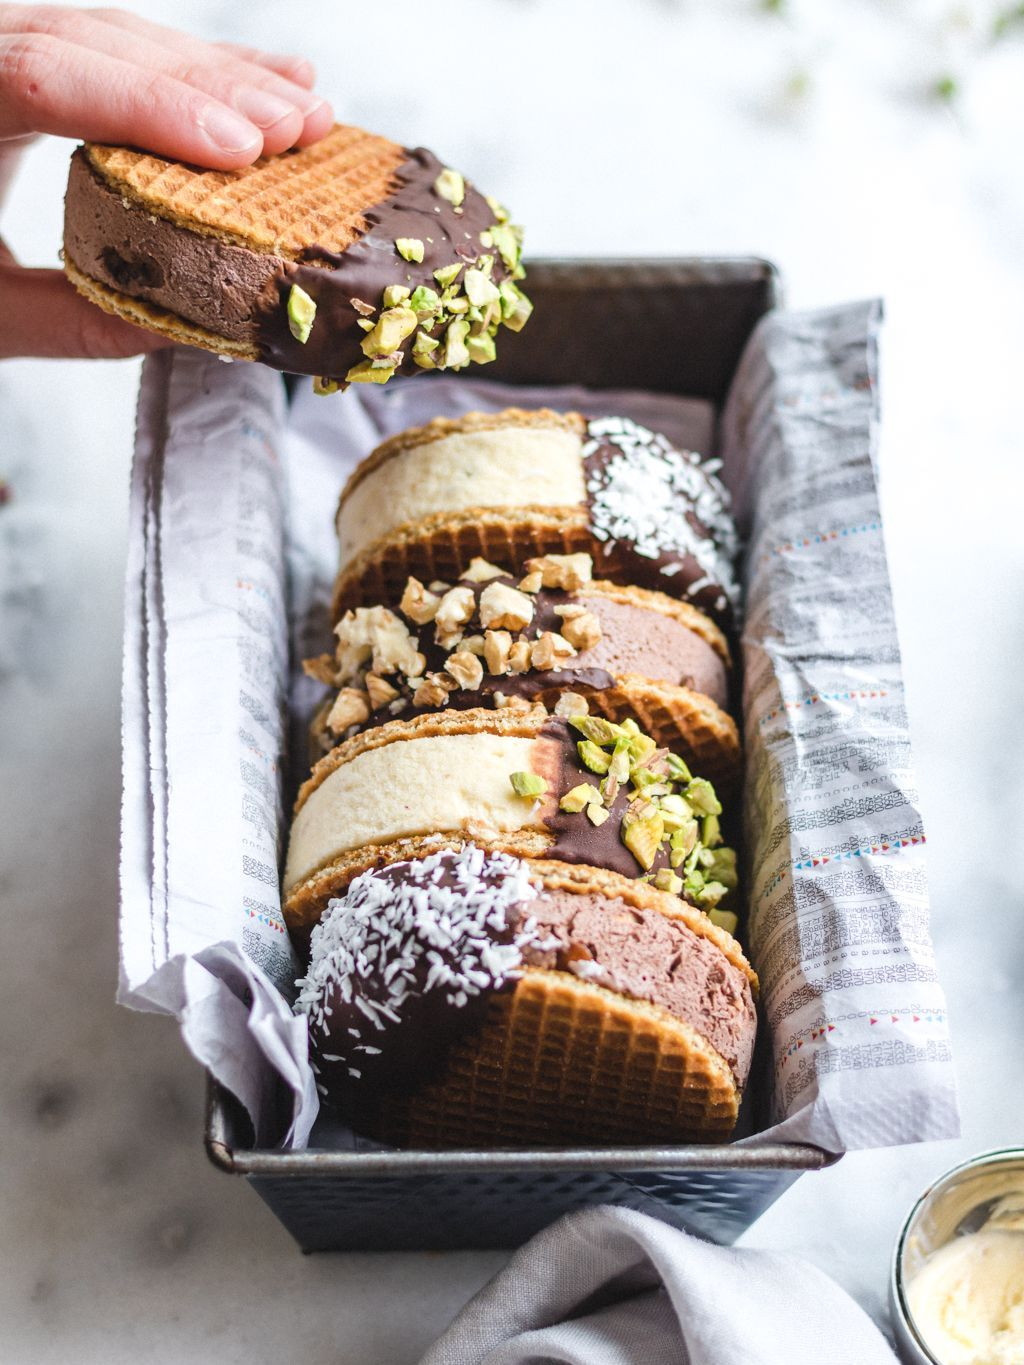 Ice Cream Waffle Sandwiches recipe by The Rainbow Eatery by Denise | The Feedfeed